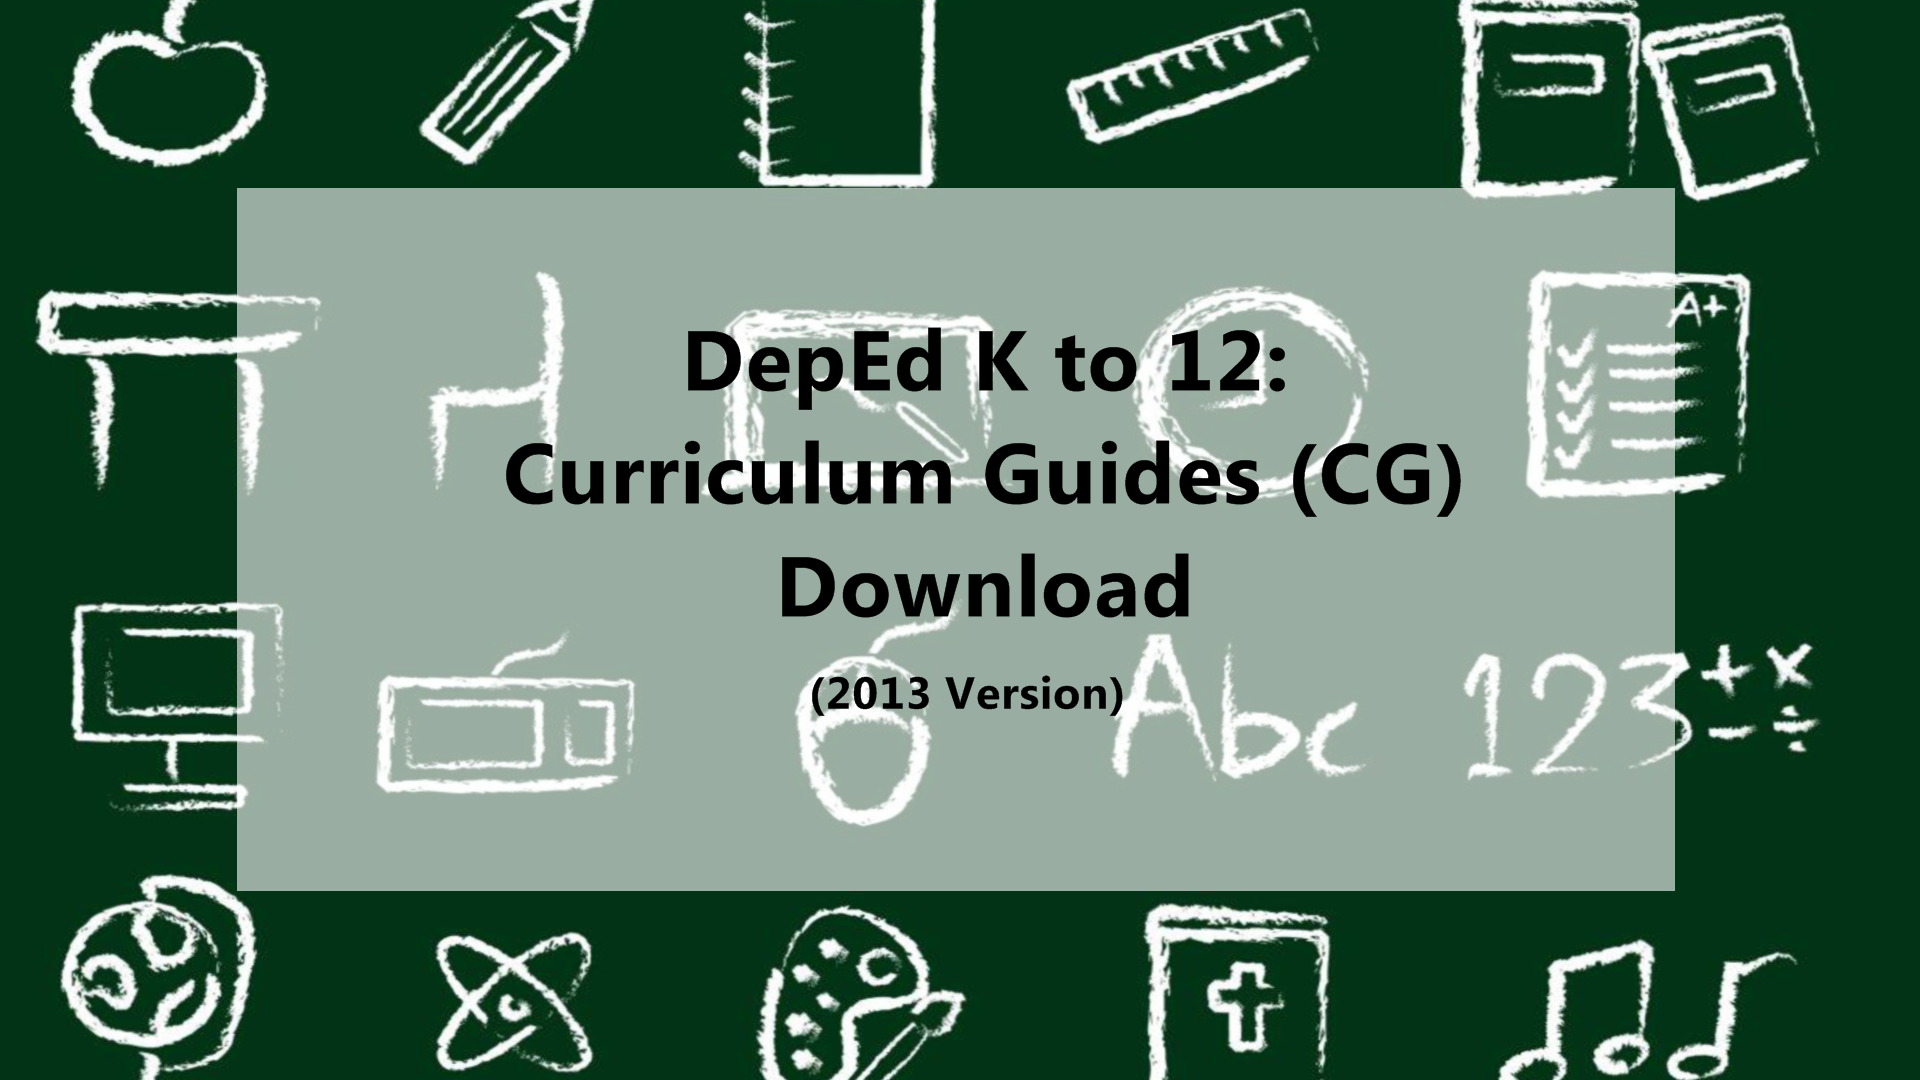 DepEd K To 12: Curriculum Guides Download